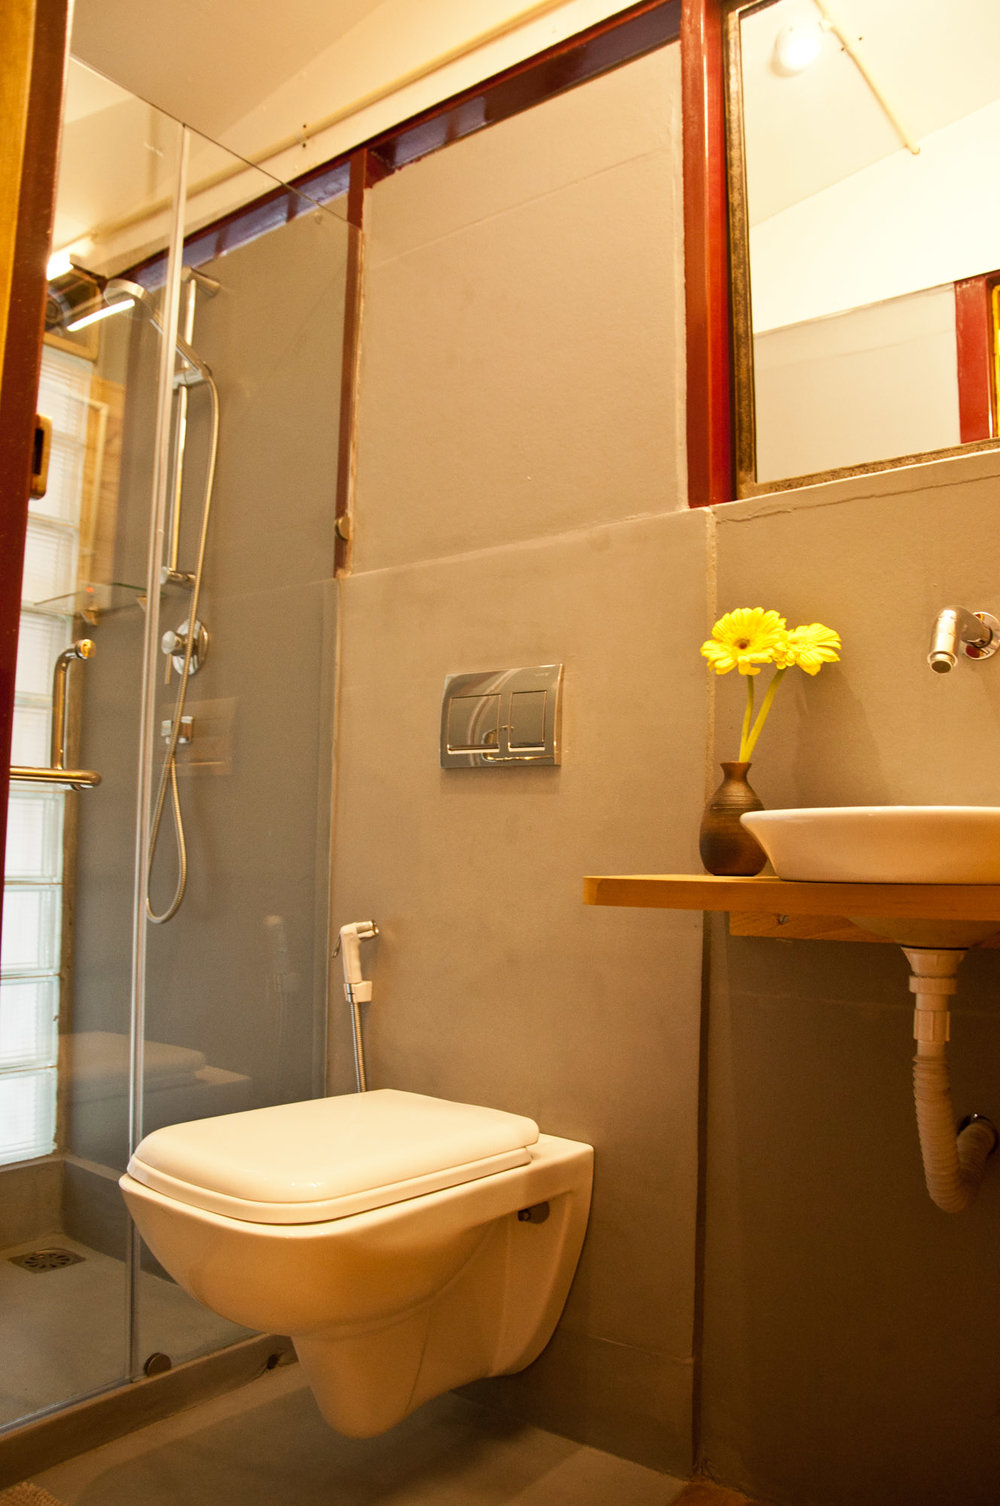 clean & modern bathroom with 24 hrs hot water for shower.